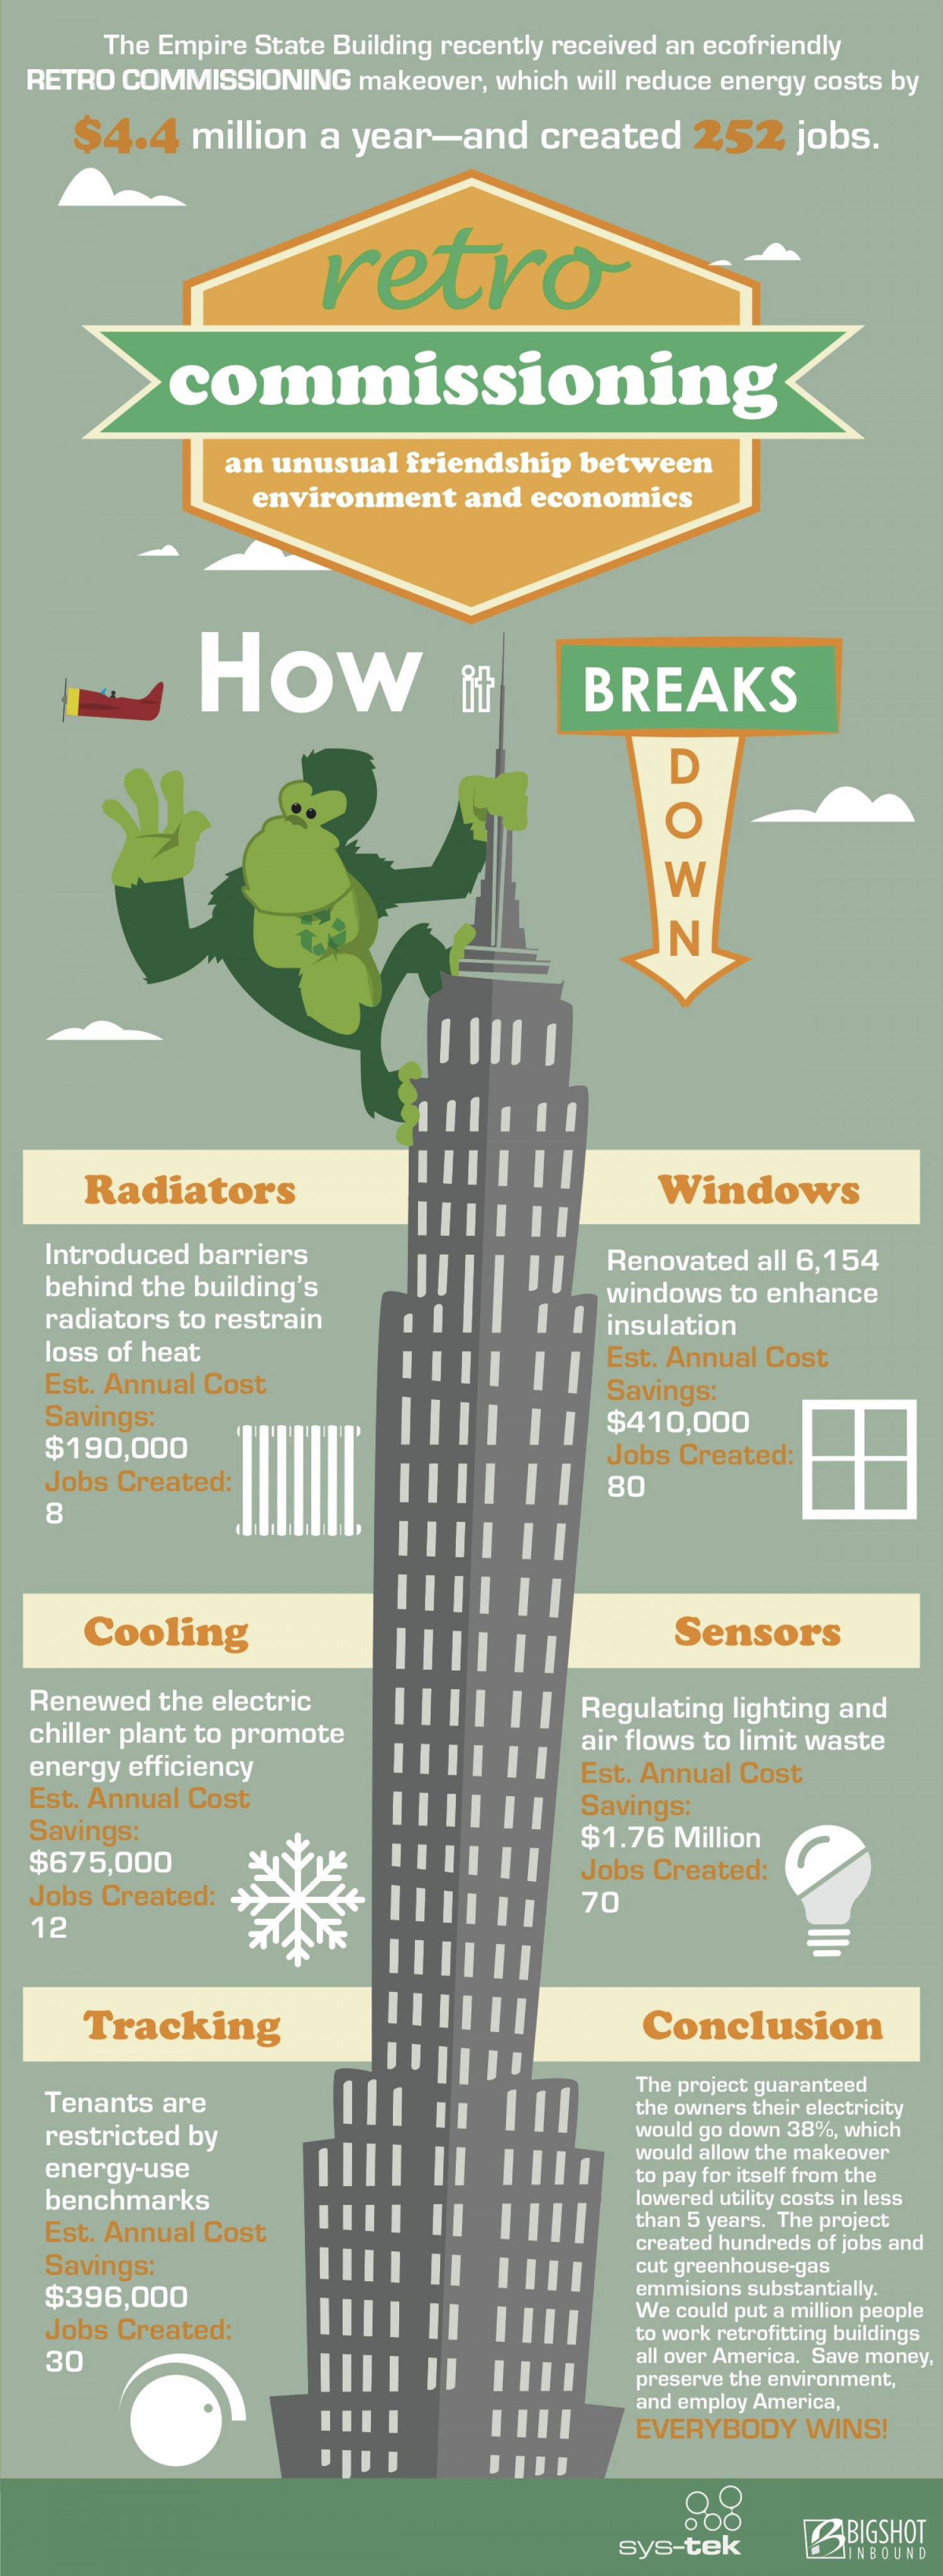 The Empire State Building In Numbers